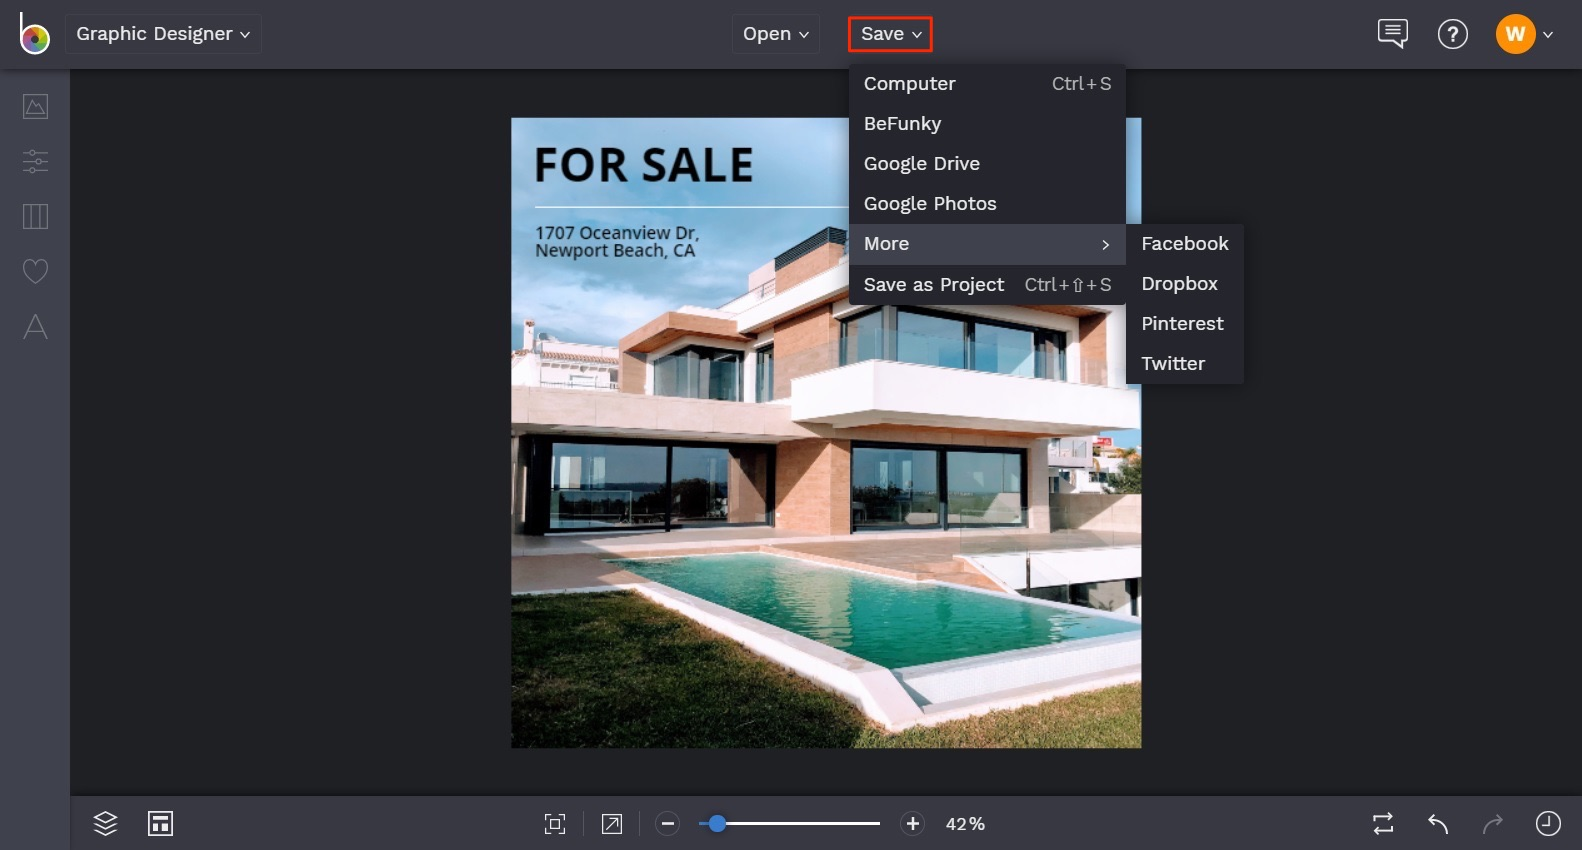 how to create social media graphics for real estate in BeFunky